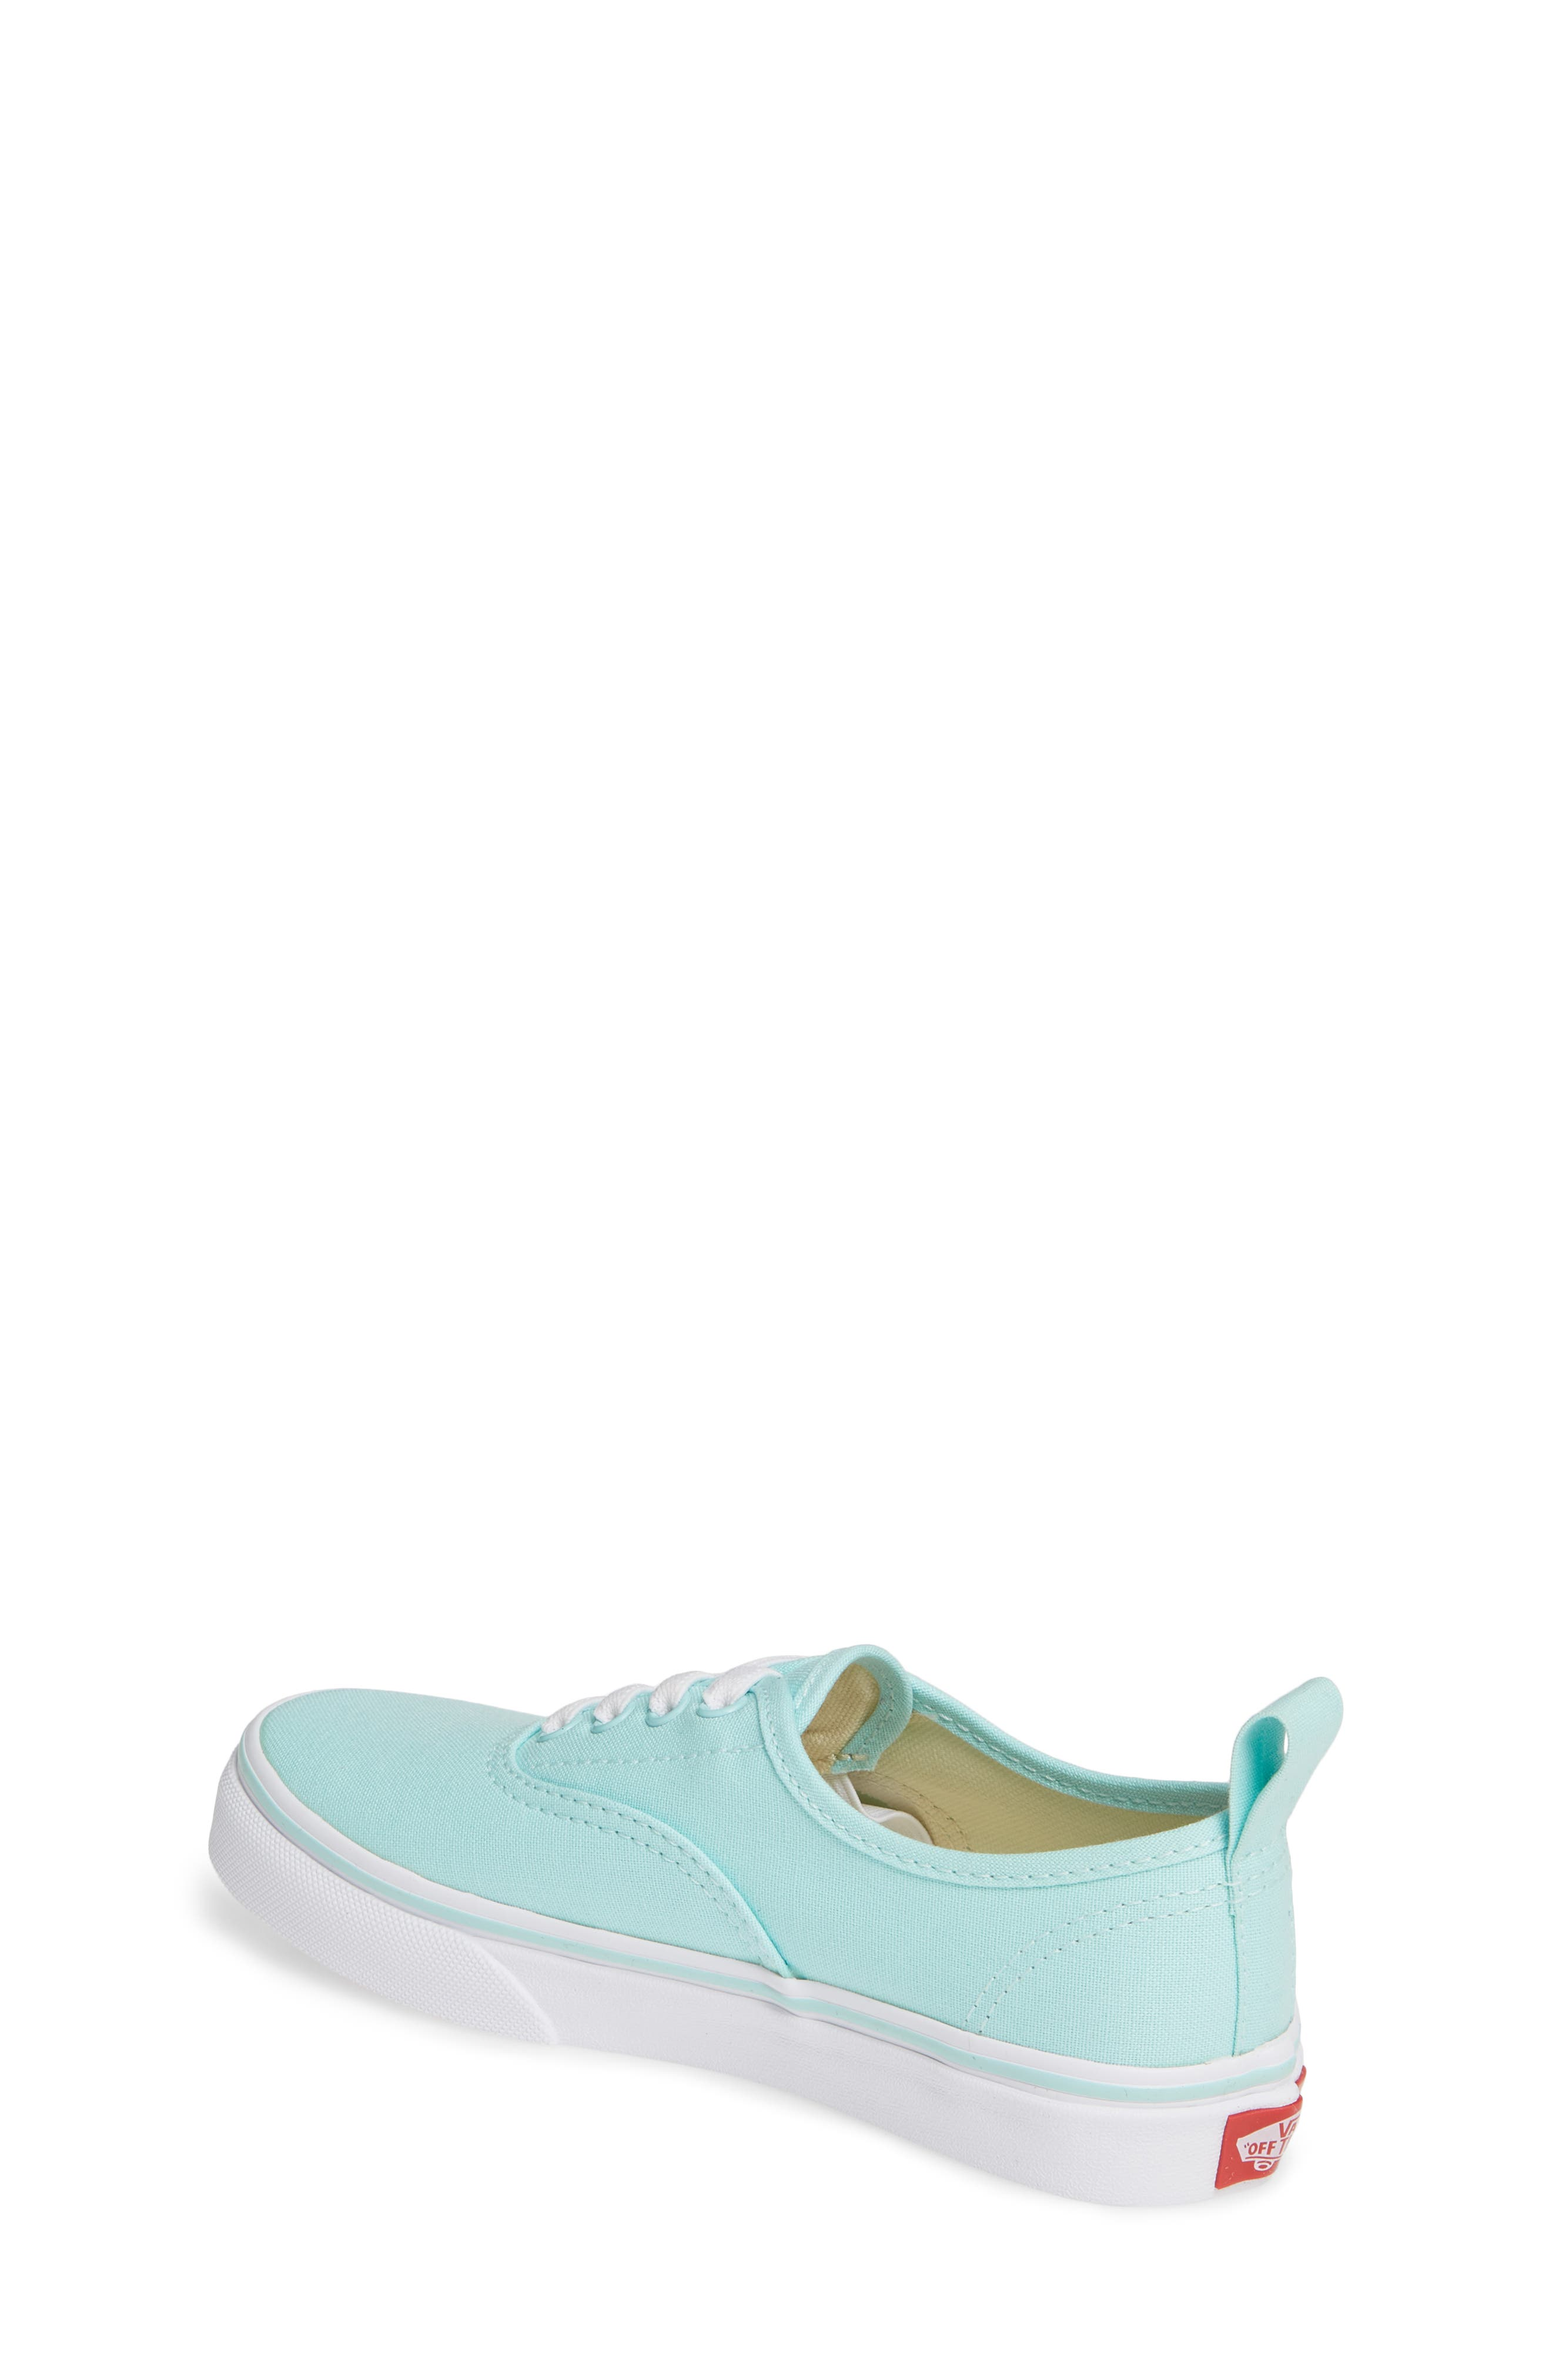 VANS, Authentic Sneaker, Alternate thumbnail 2, color, BLUE TINT/ TRUE WHITE